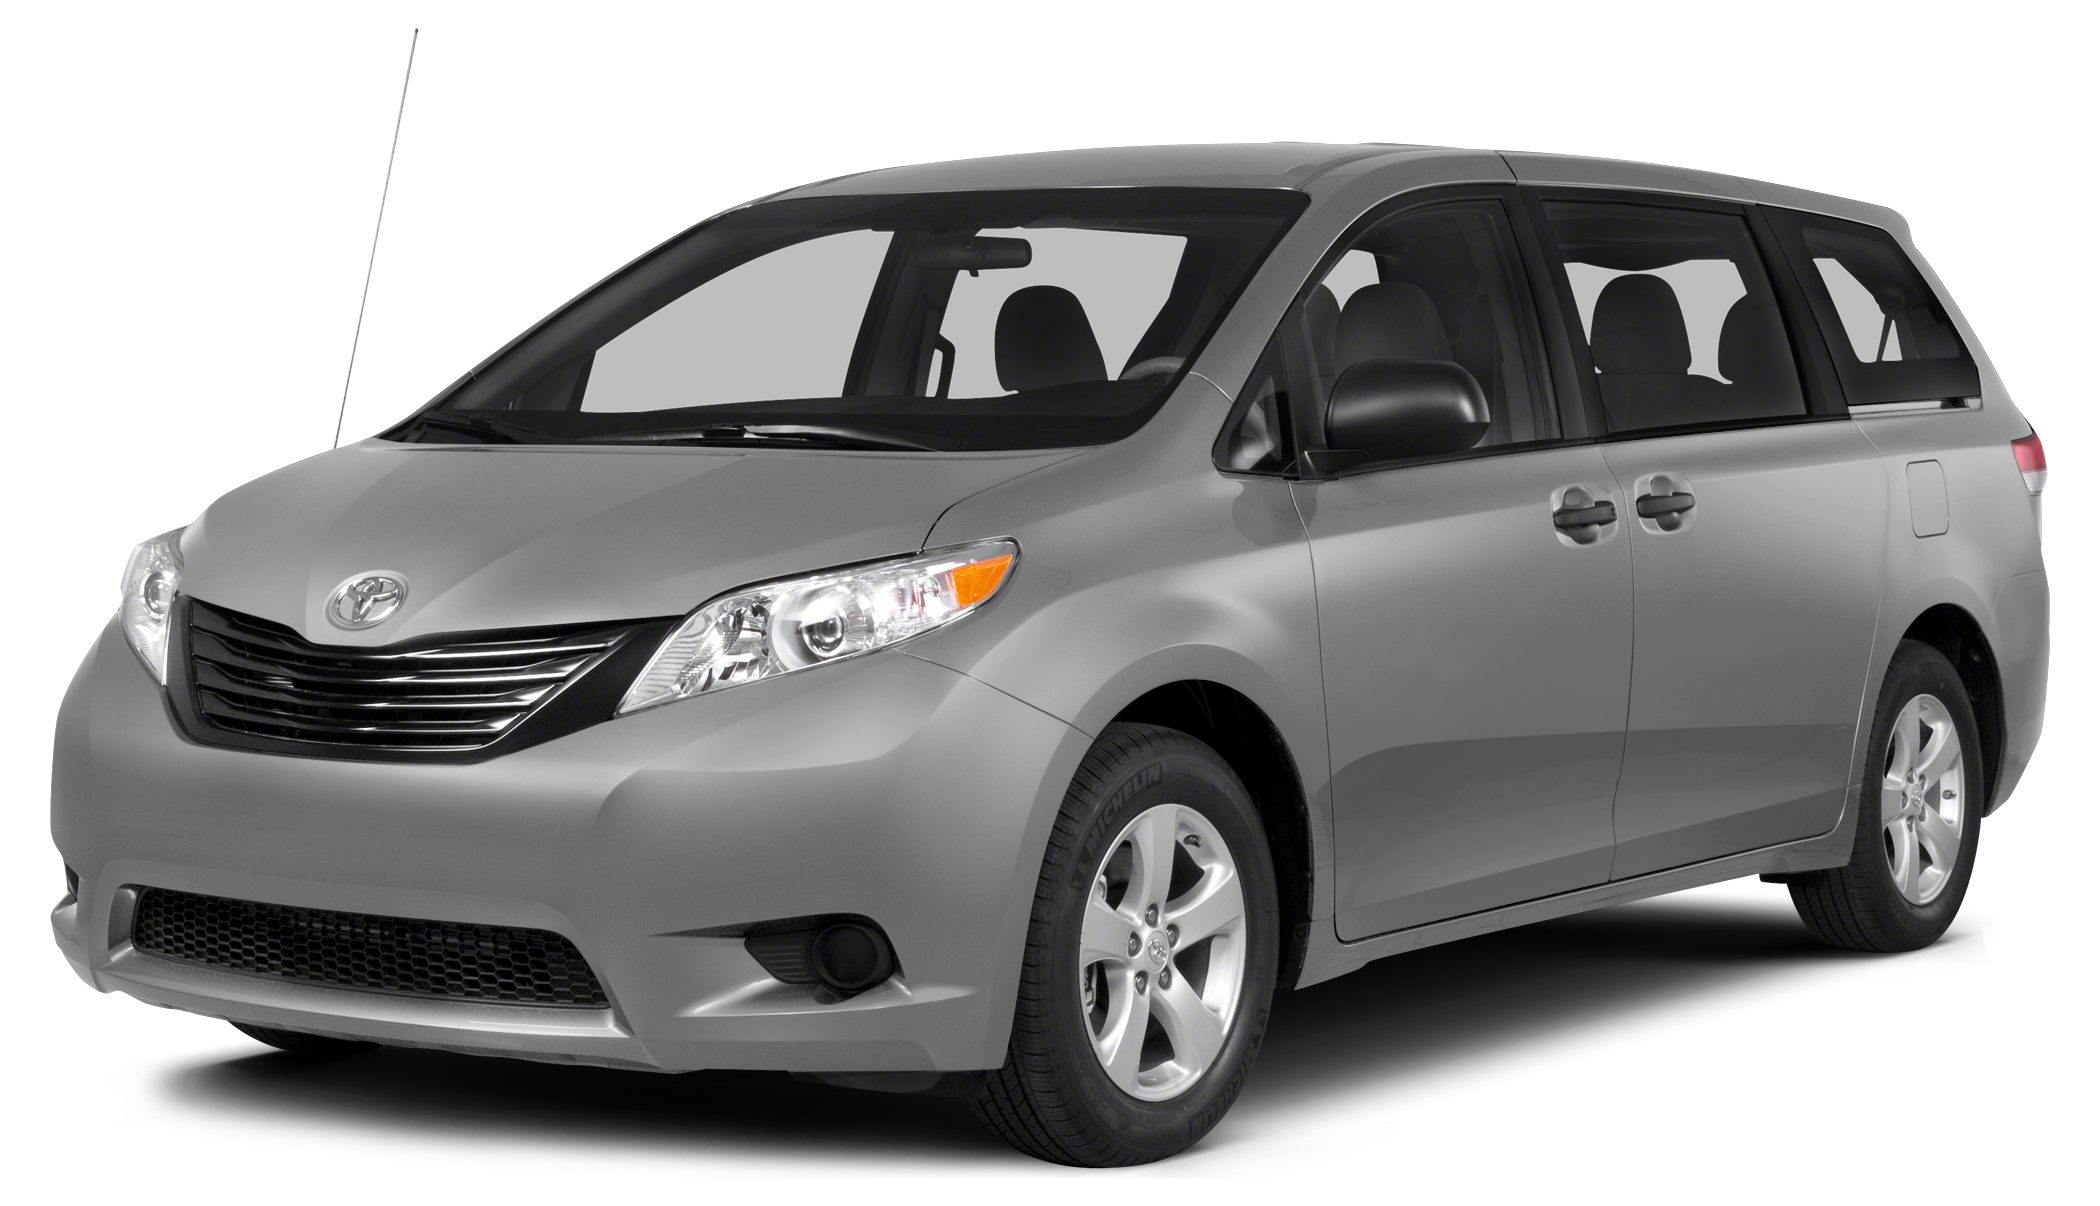 2014 Toyota Sienna XLE 8 Passenger WE SELL OUR VEHICLES AT WHOLESALE PRICES AND STAND BEHIND OUR C